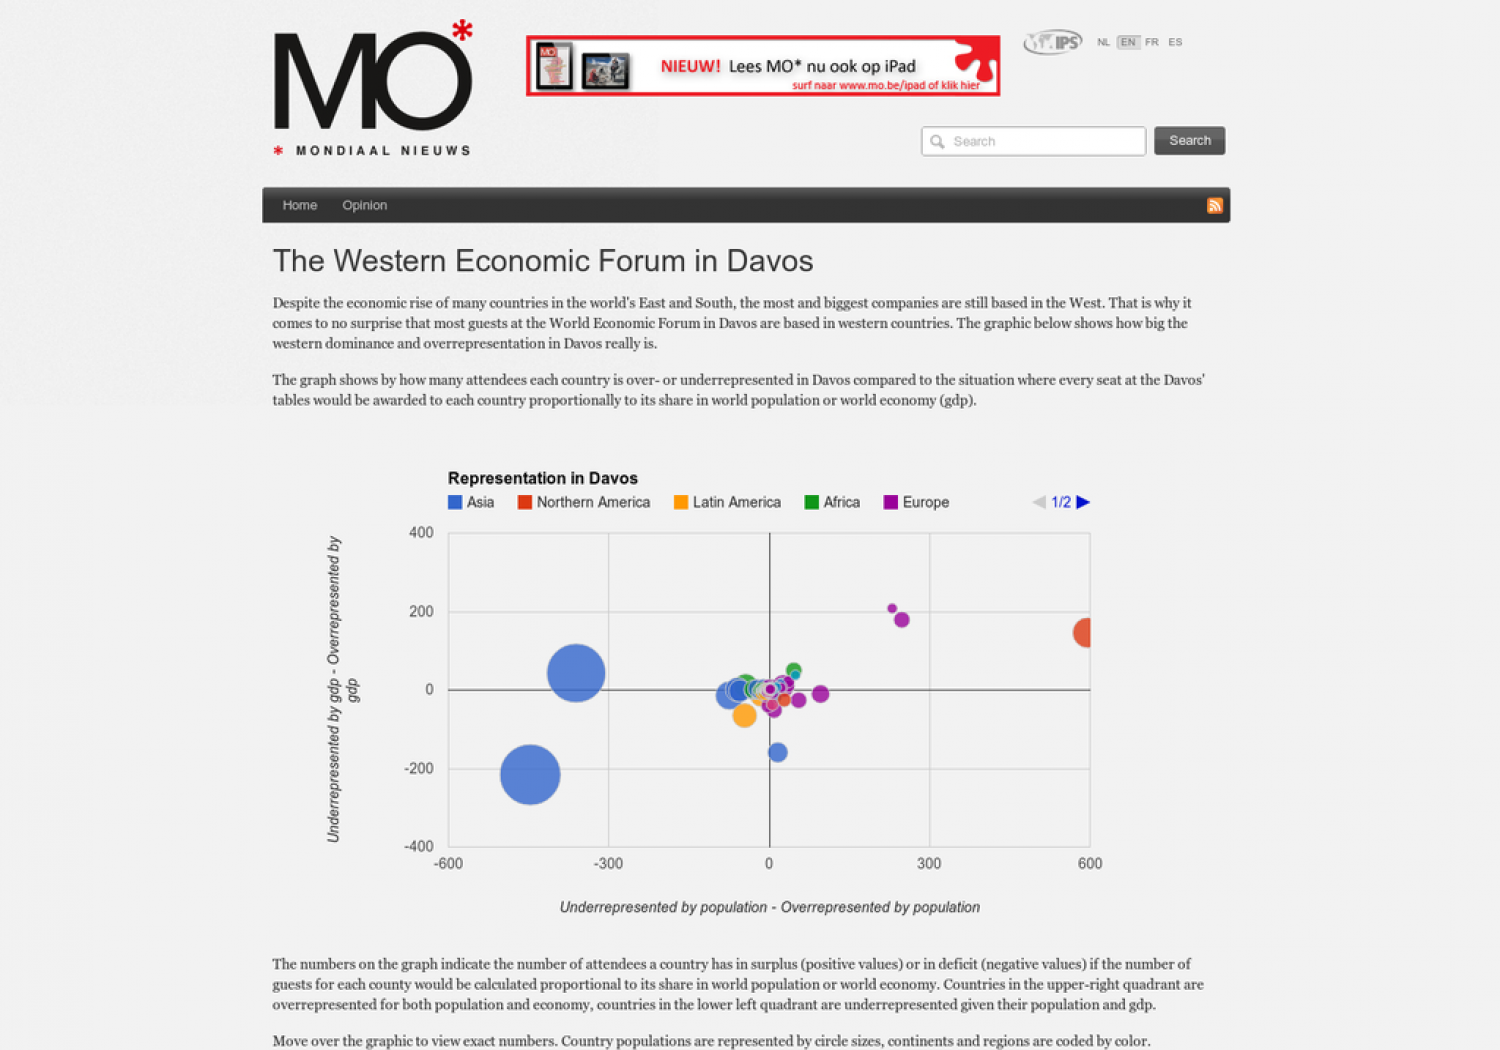 The Western Economic Forum Infographic